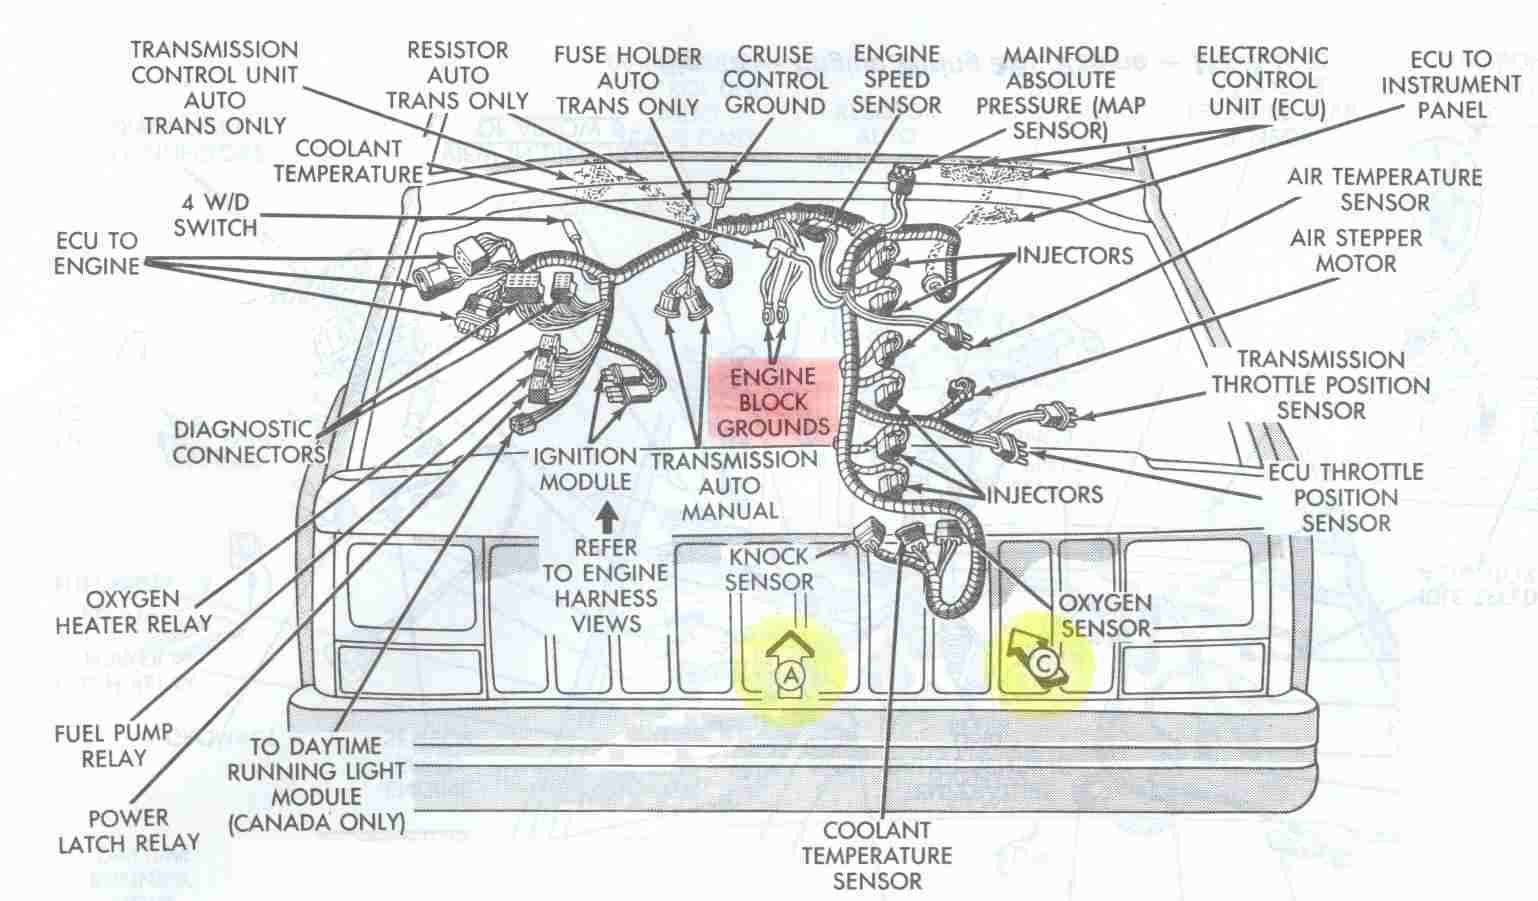 ab0134a7d9e021431187af597eb4aeca engine bay schematic showing major electrical ground points for 89 jeep cherokee wiring diagram at gsmx.co